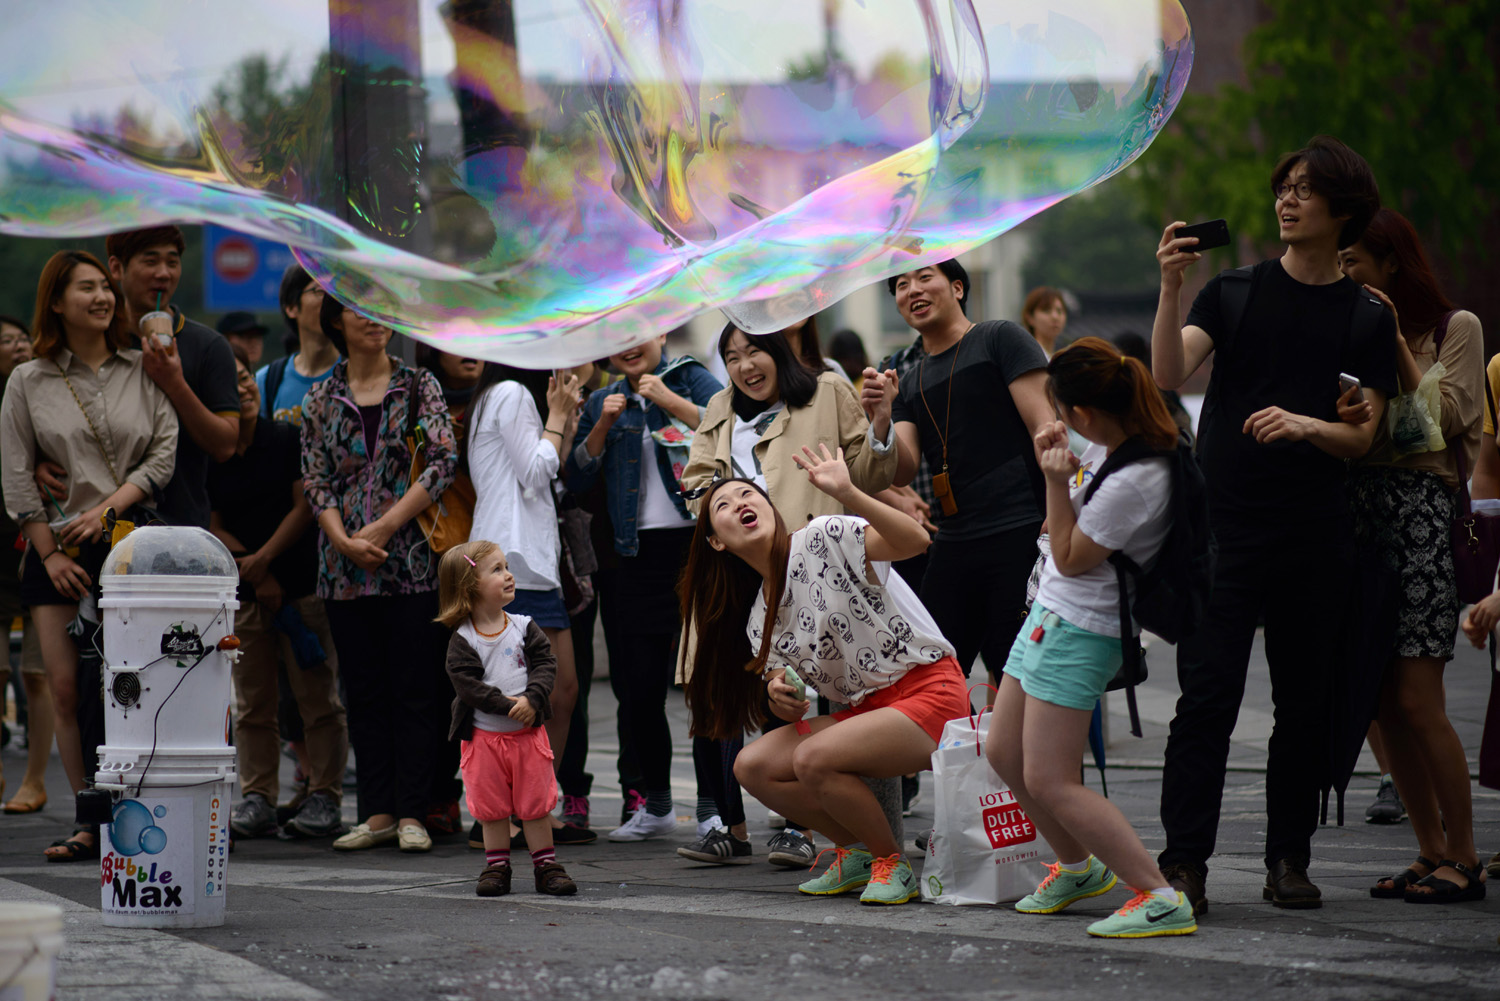 Tourists react to a large bubble created by a street performer in Seoul on June 2, 2014.